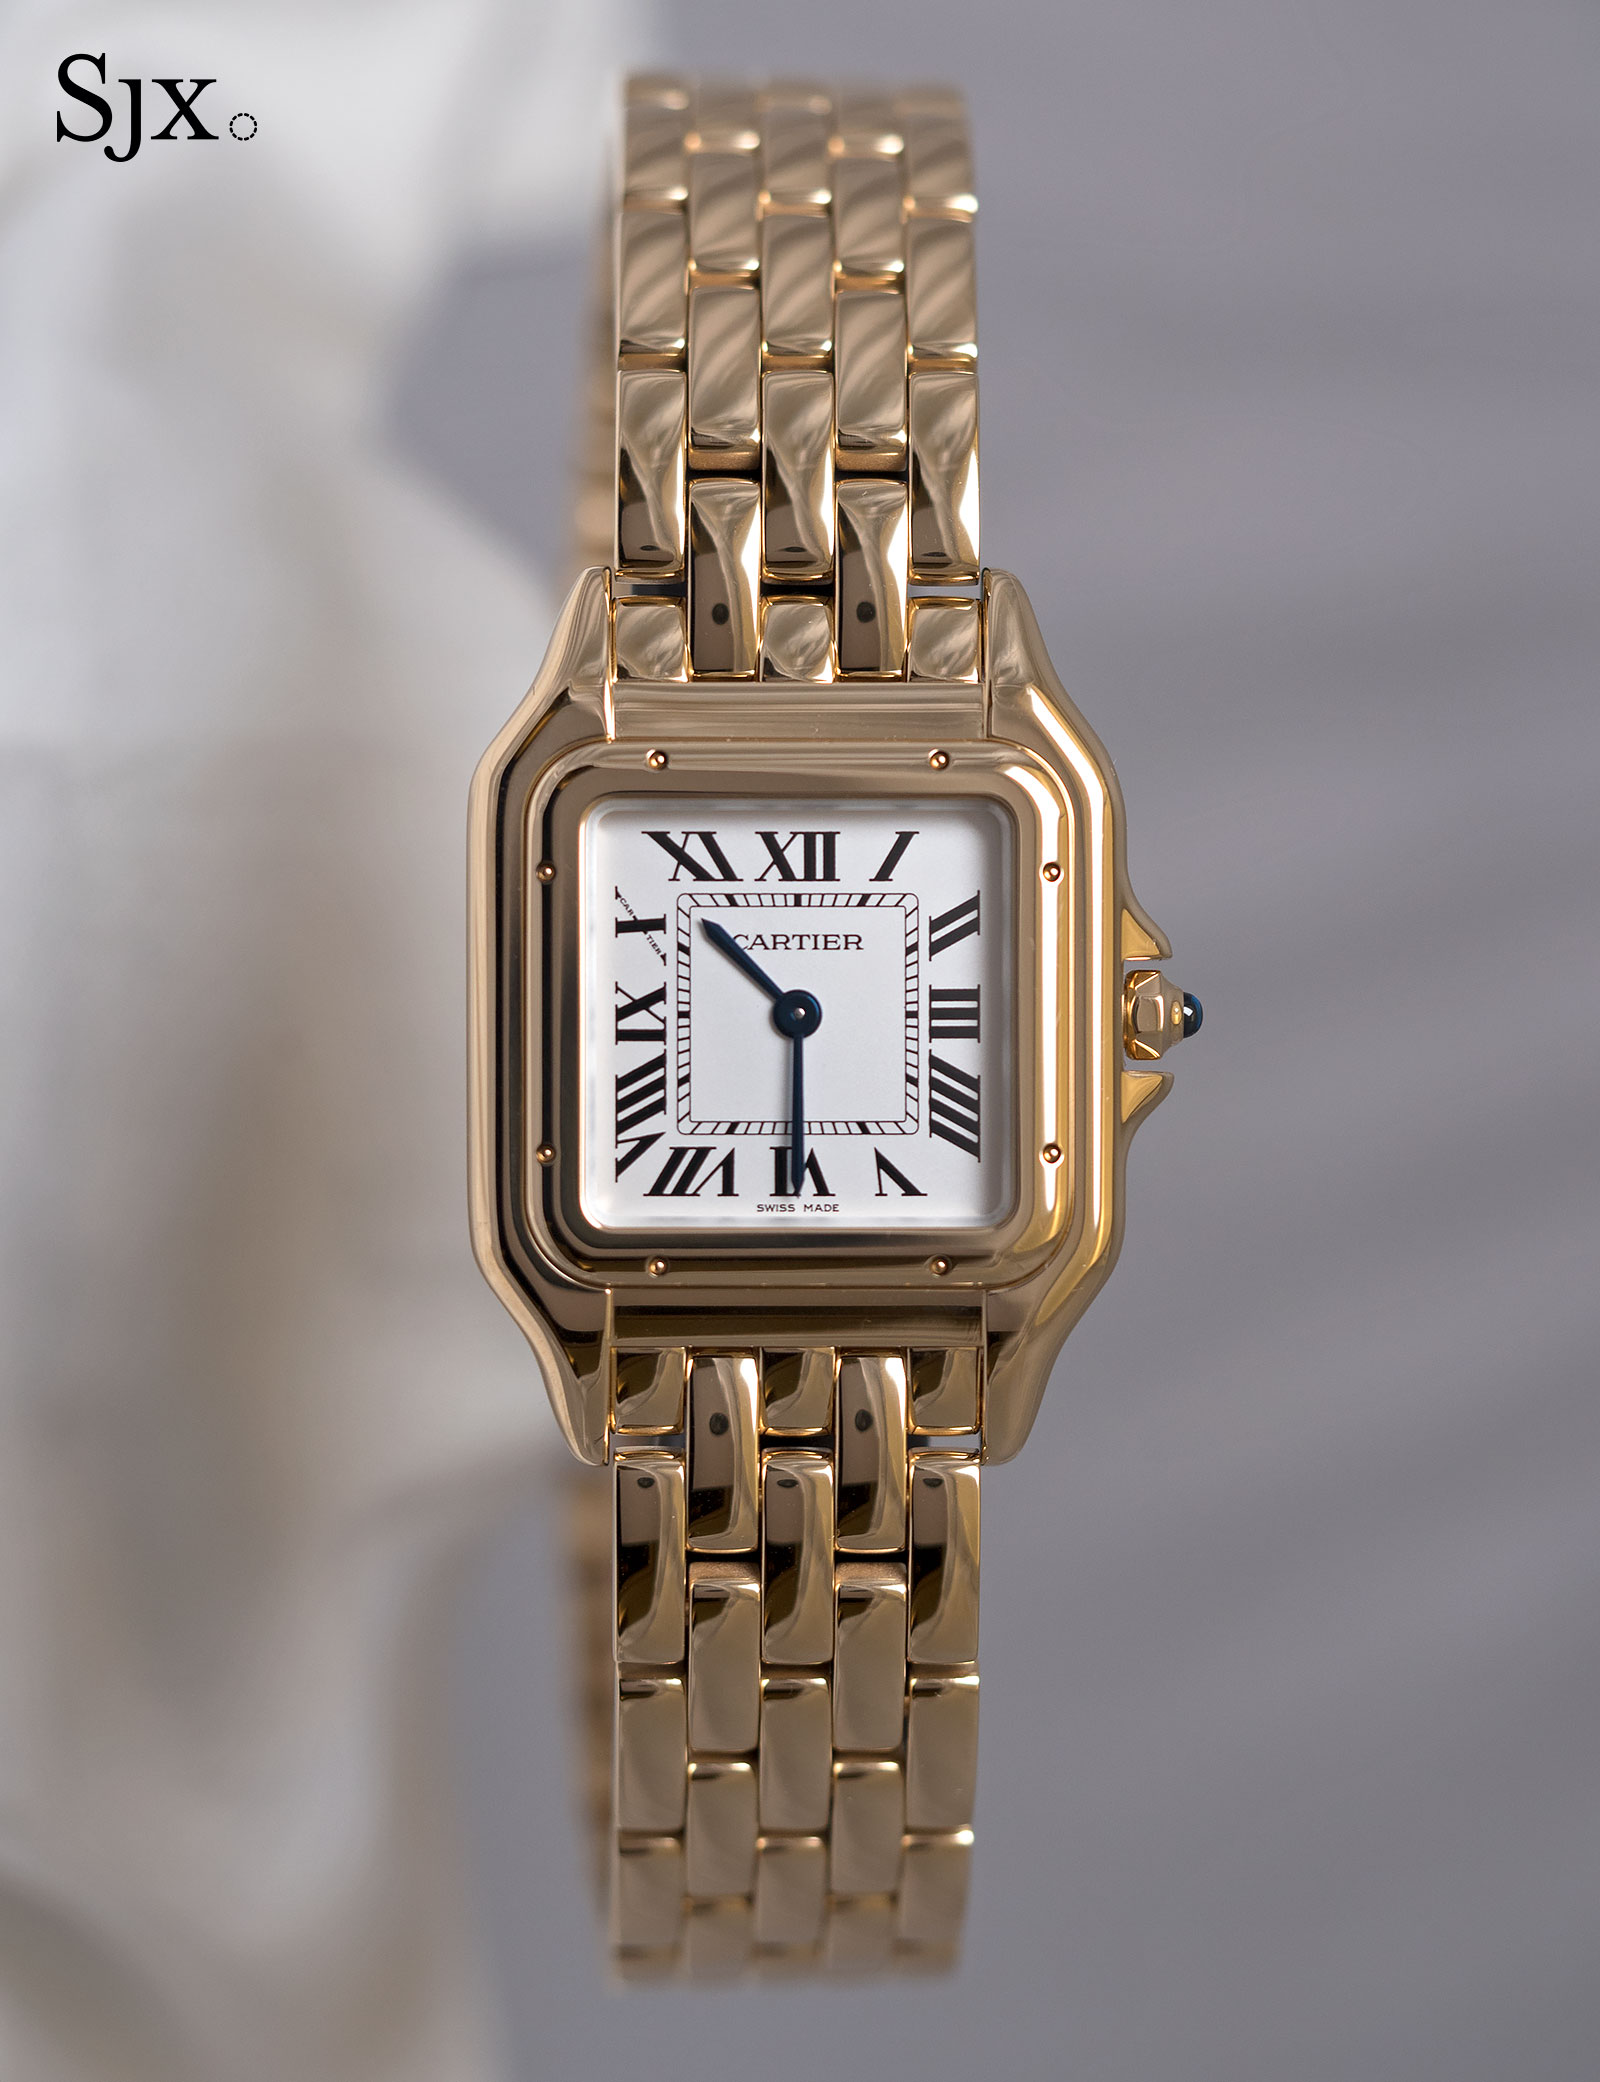 Cartier Women S Watches With Diamonds